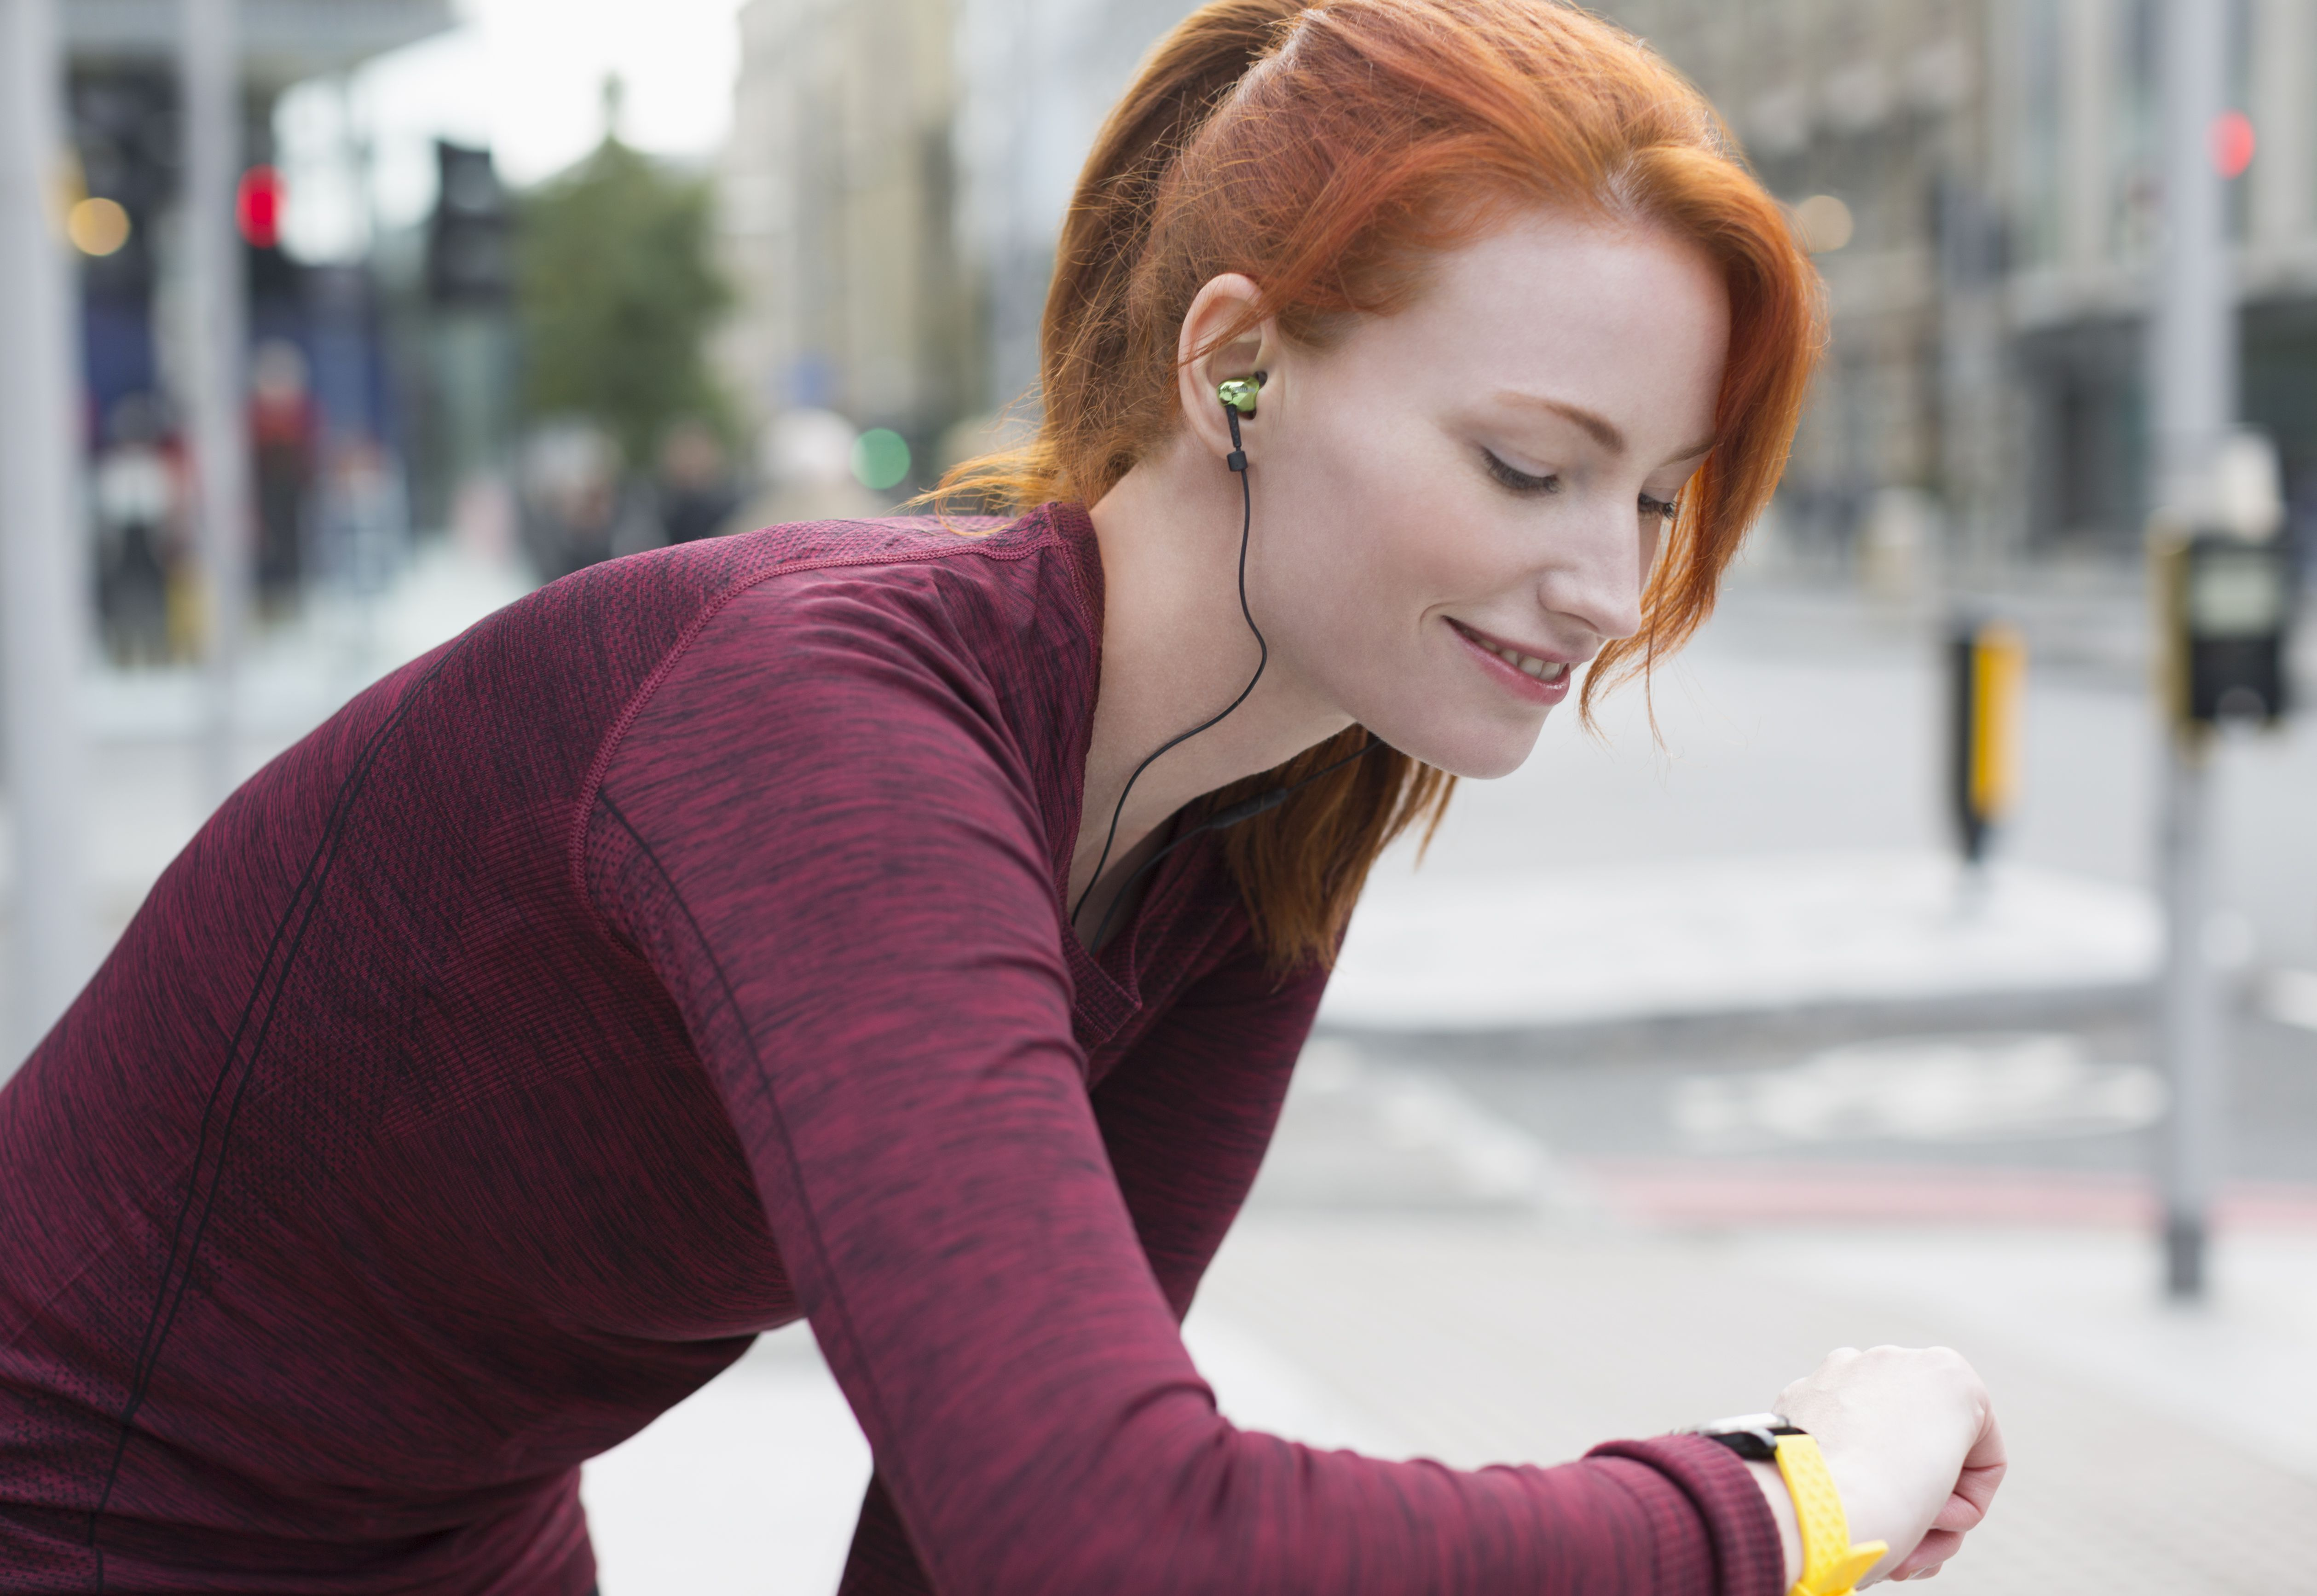 Smiling female runner with headphones checking smart watch